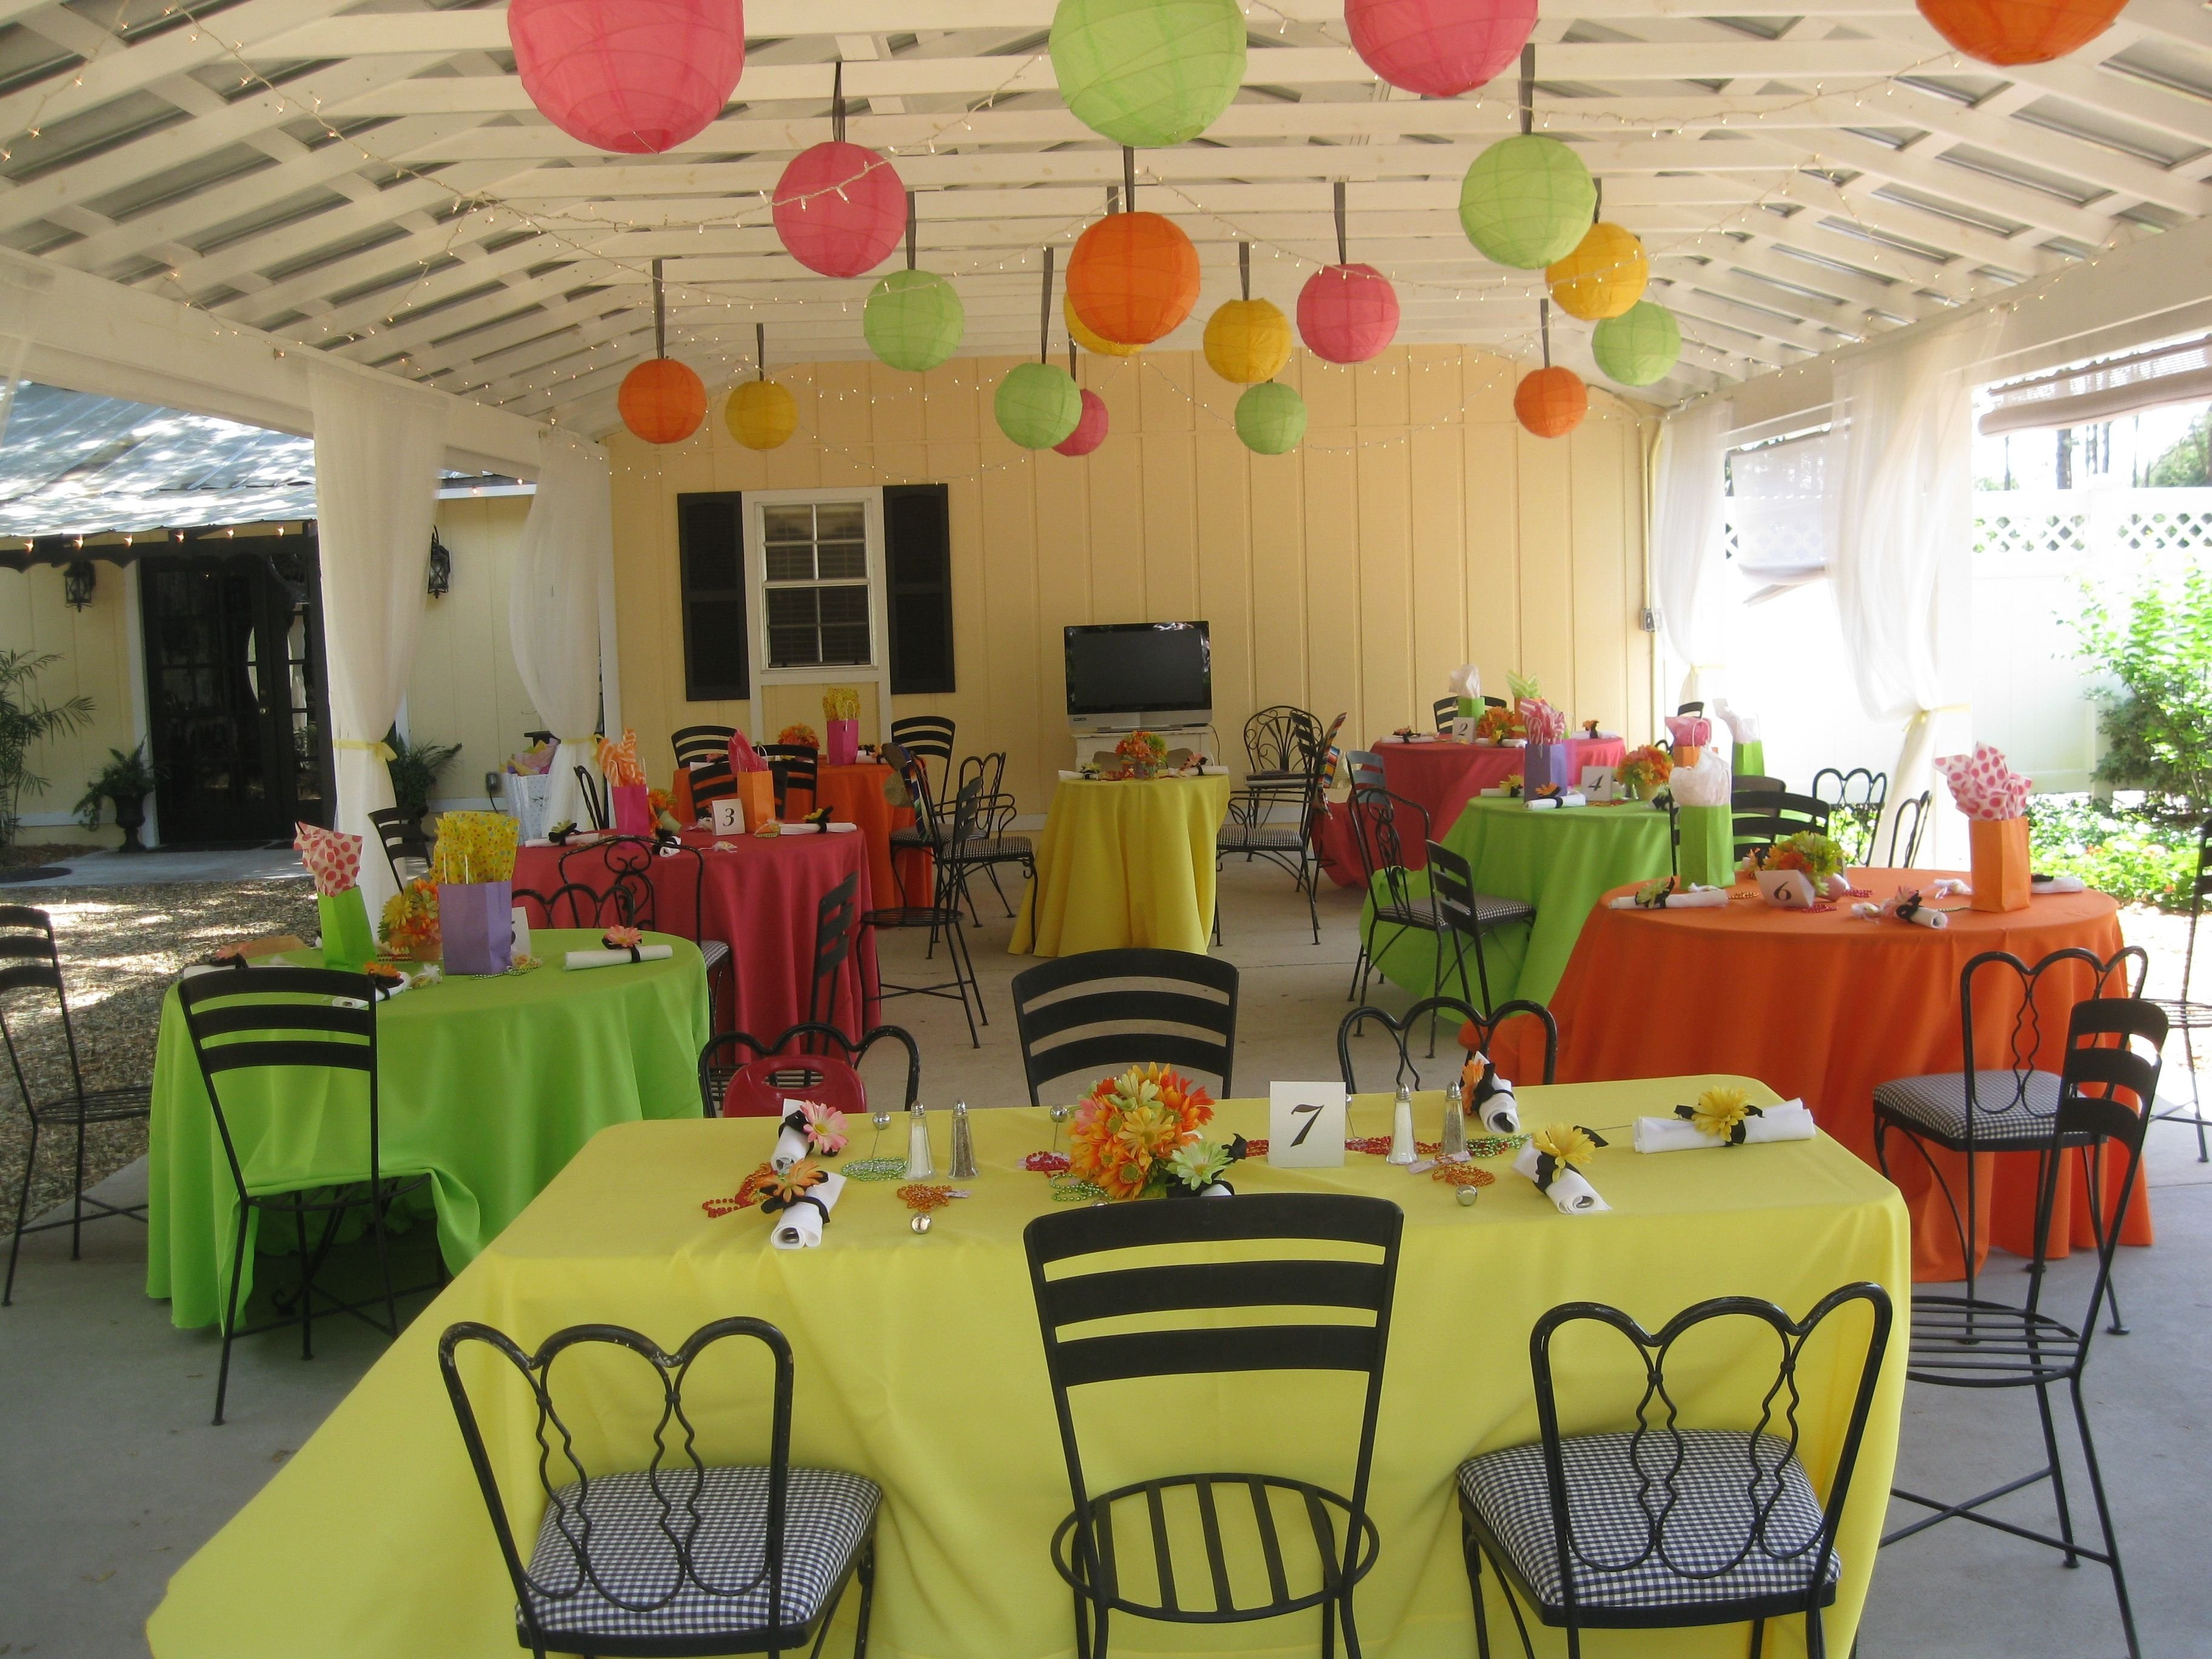 10 Stunning Sweet Sixteen Ideas No Party colorful tablecloths no overlay mexican themed fiesta sweet 16 2021